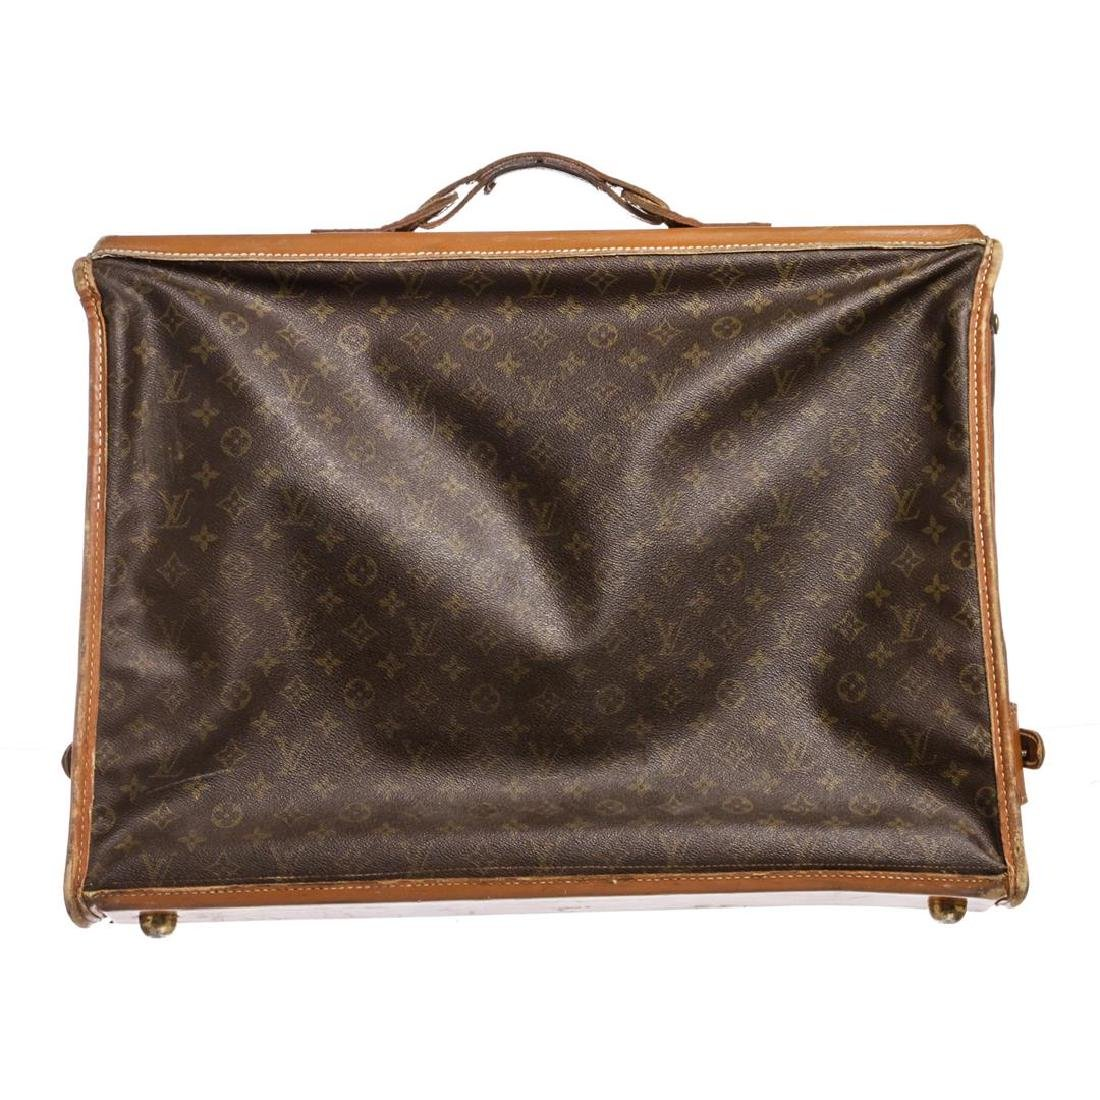 Louis Vuitton Monogram Canvas Leather Vintage Garment